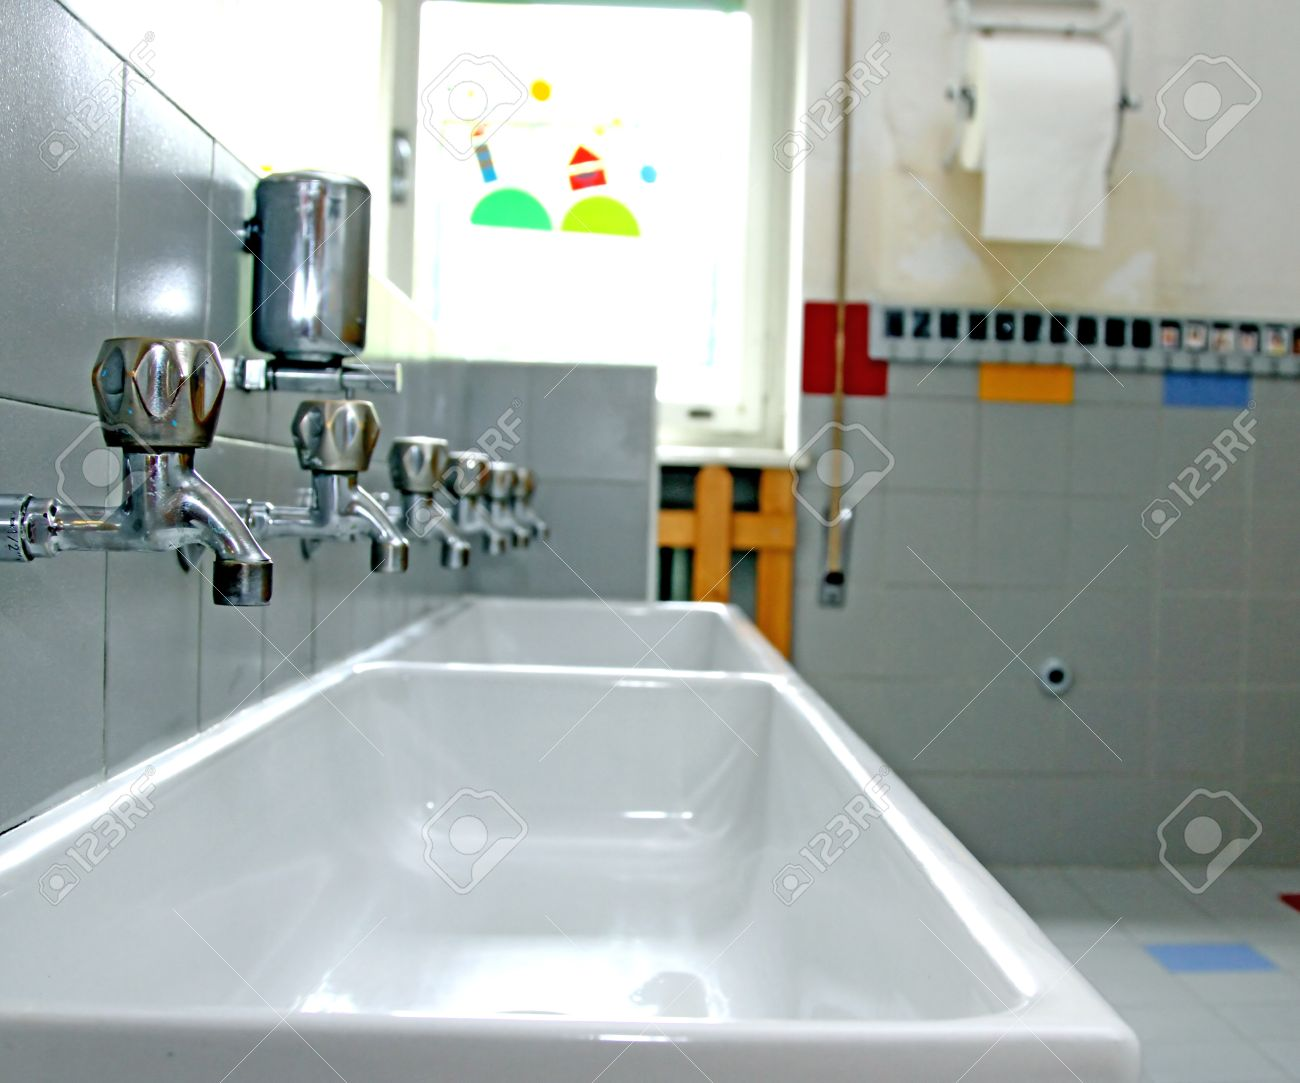 Sinks And Washbasins With Very Low Taps In The Toilets Of A Nursery ...